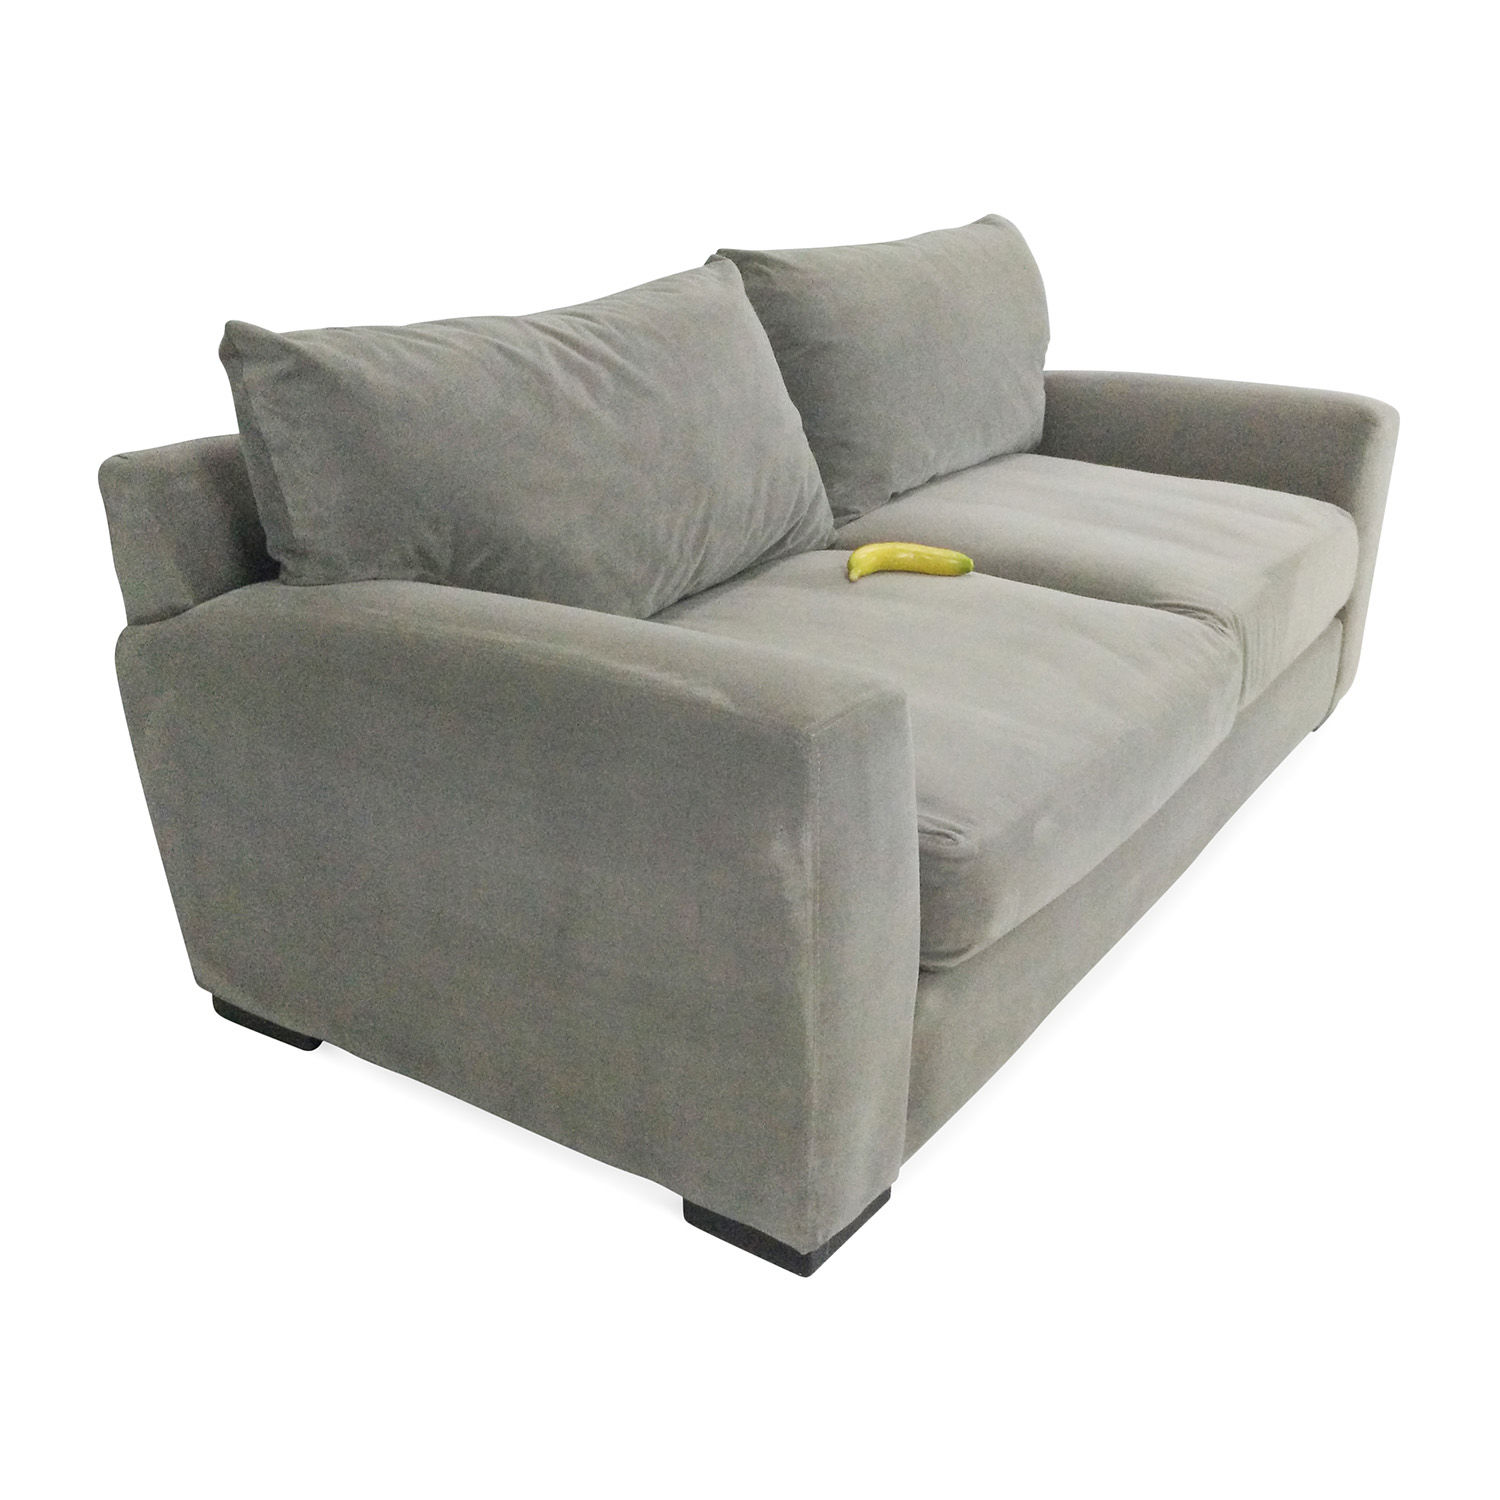 best of raymour and flanigan leather sofa photo-New Raymour and Flanigan Leather sofa Online